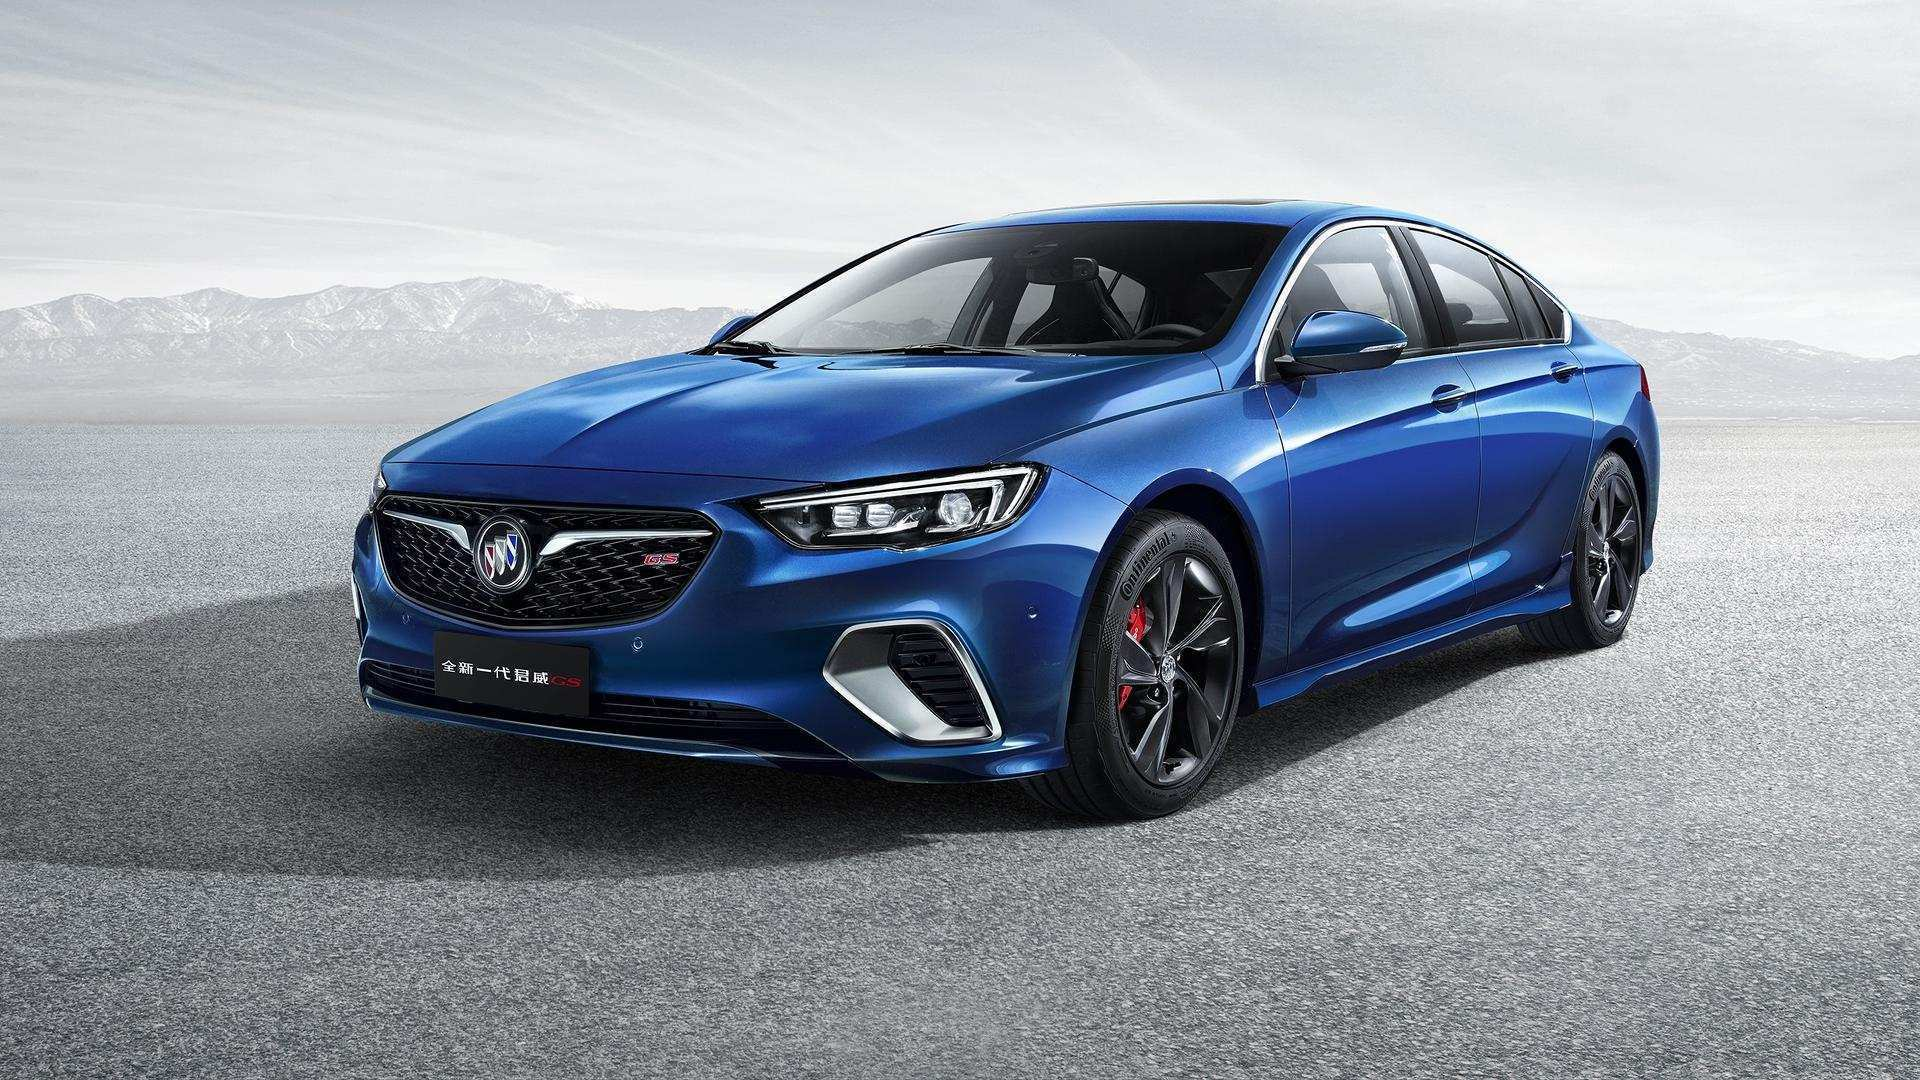 31 The 2020 Buick Regal Gs First Drive